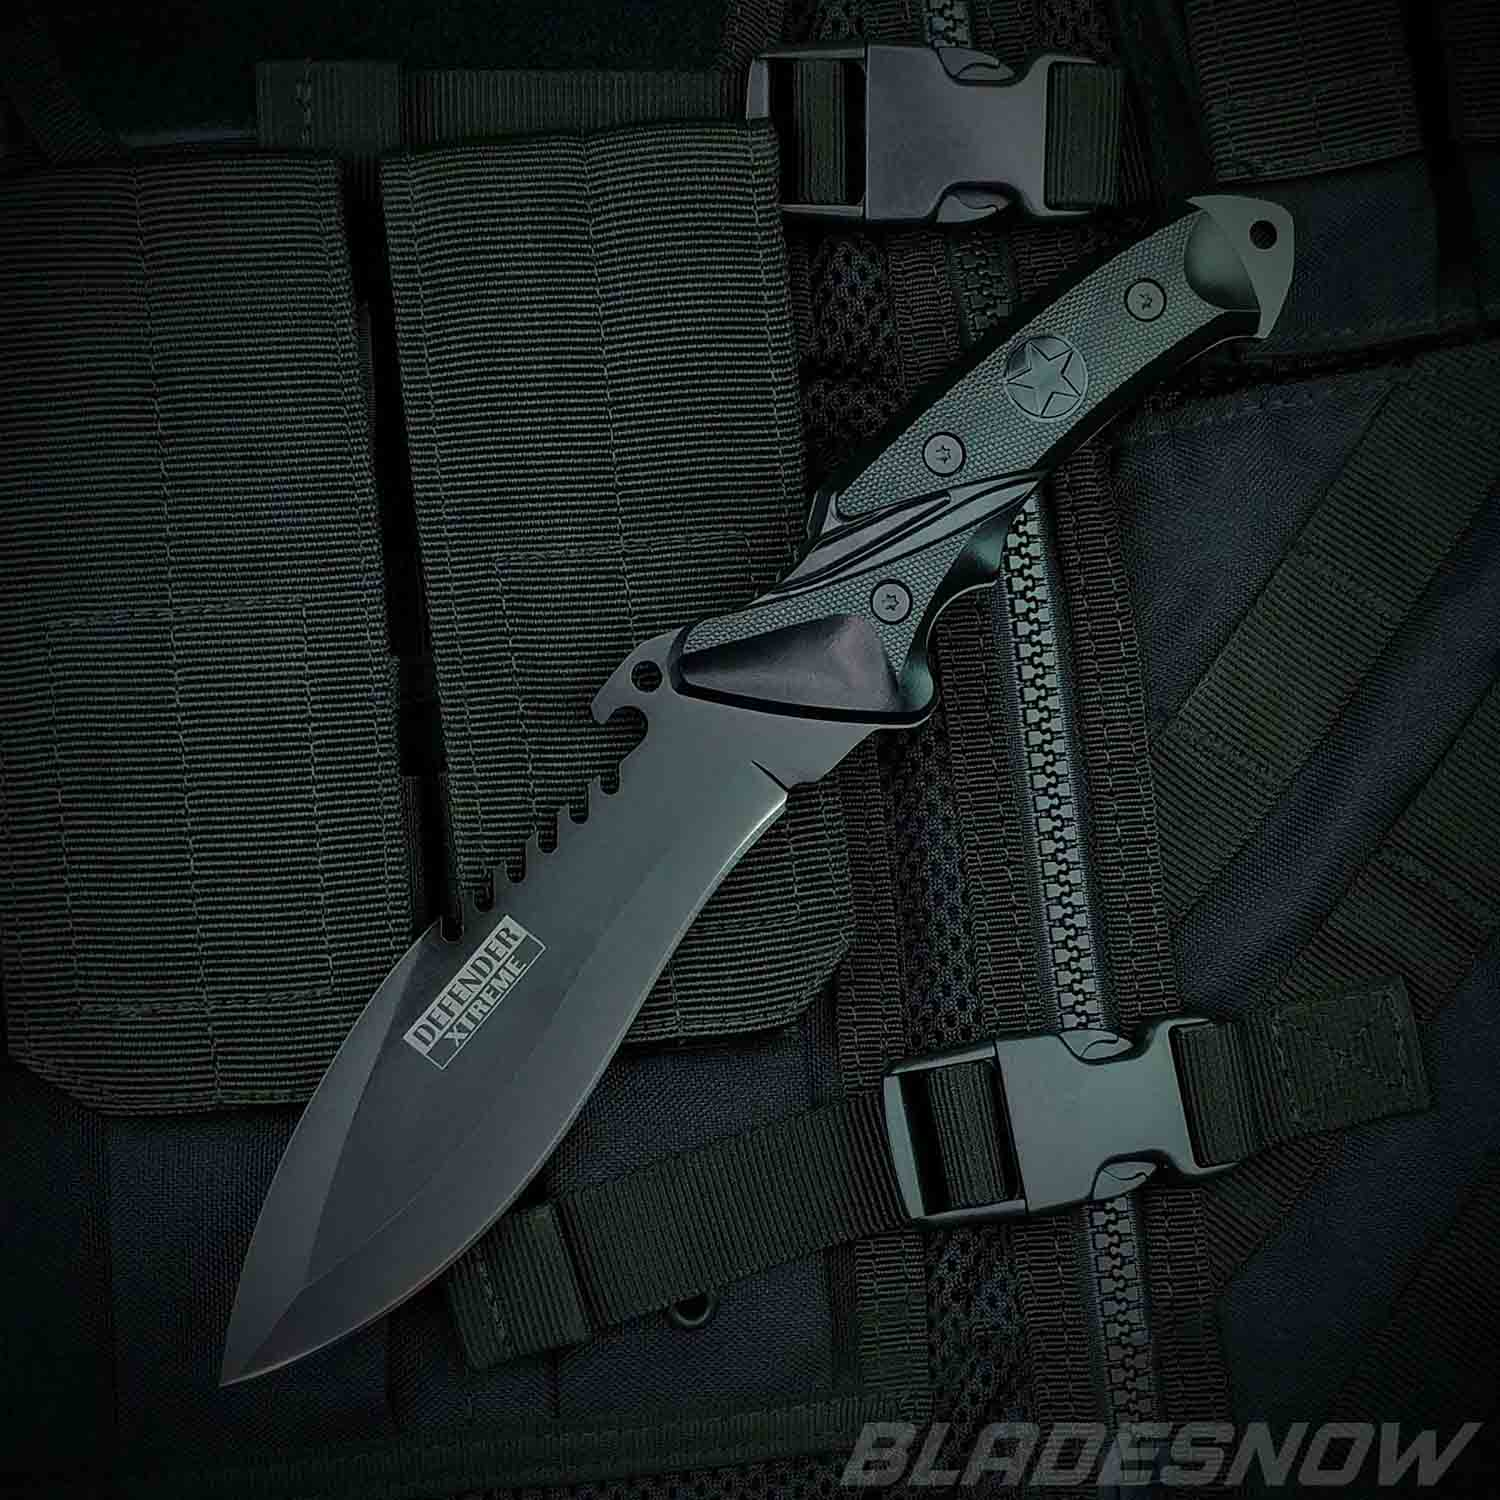 Fathead Fixed Blade Bowie Knife